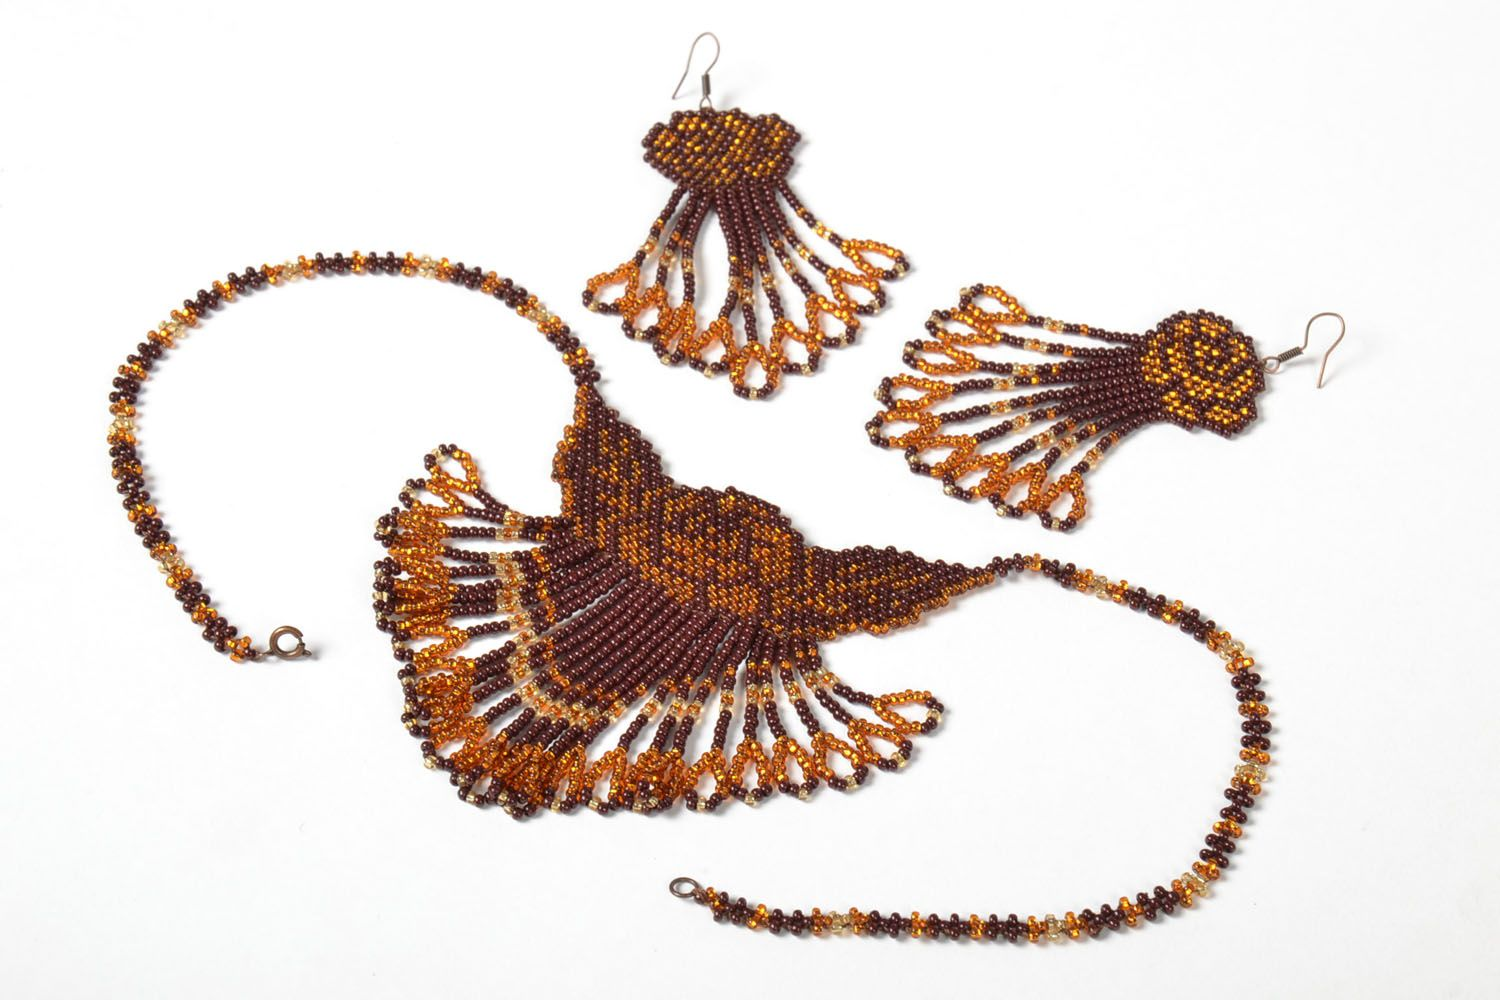 Beaded earrings and necklace photo 4